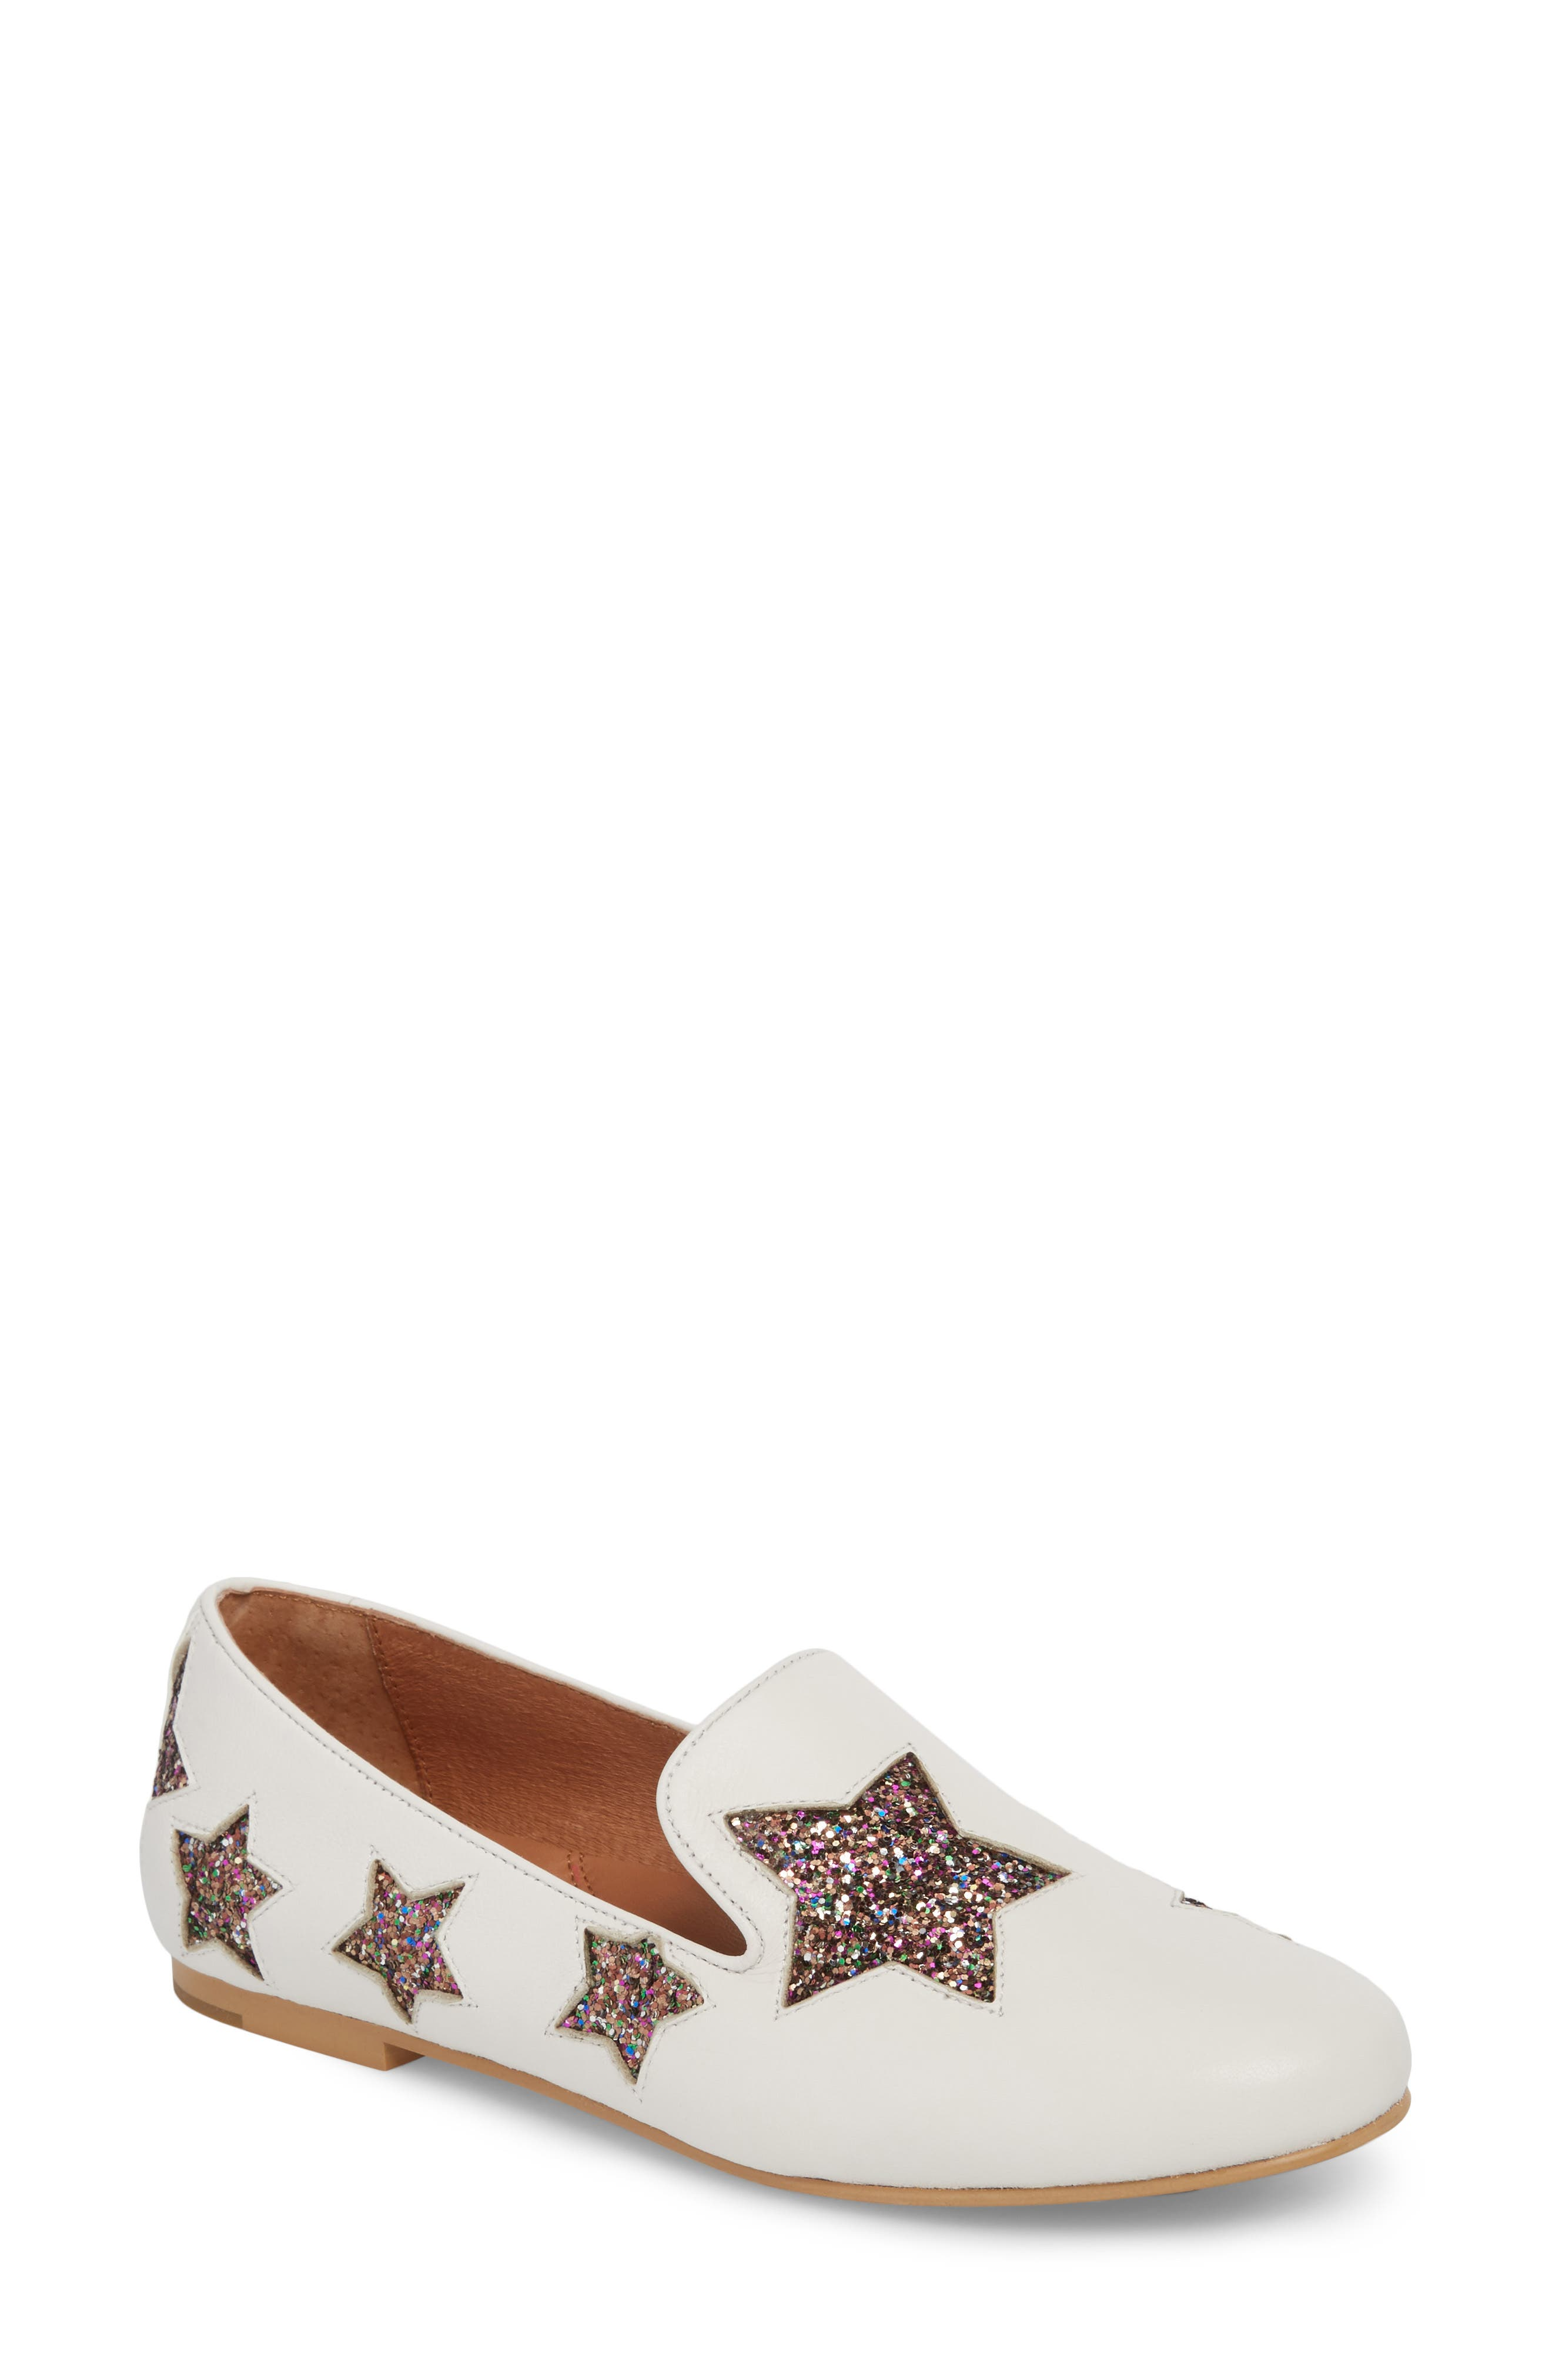 Gentle Souls By Kenneth Cole Eugene Stars Flat, White